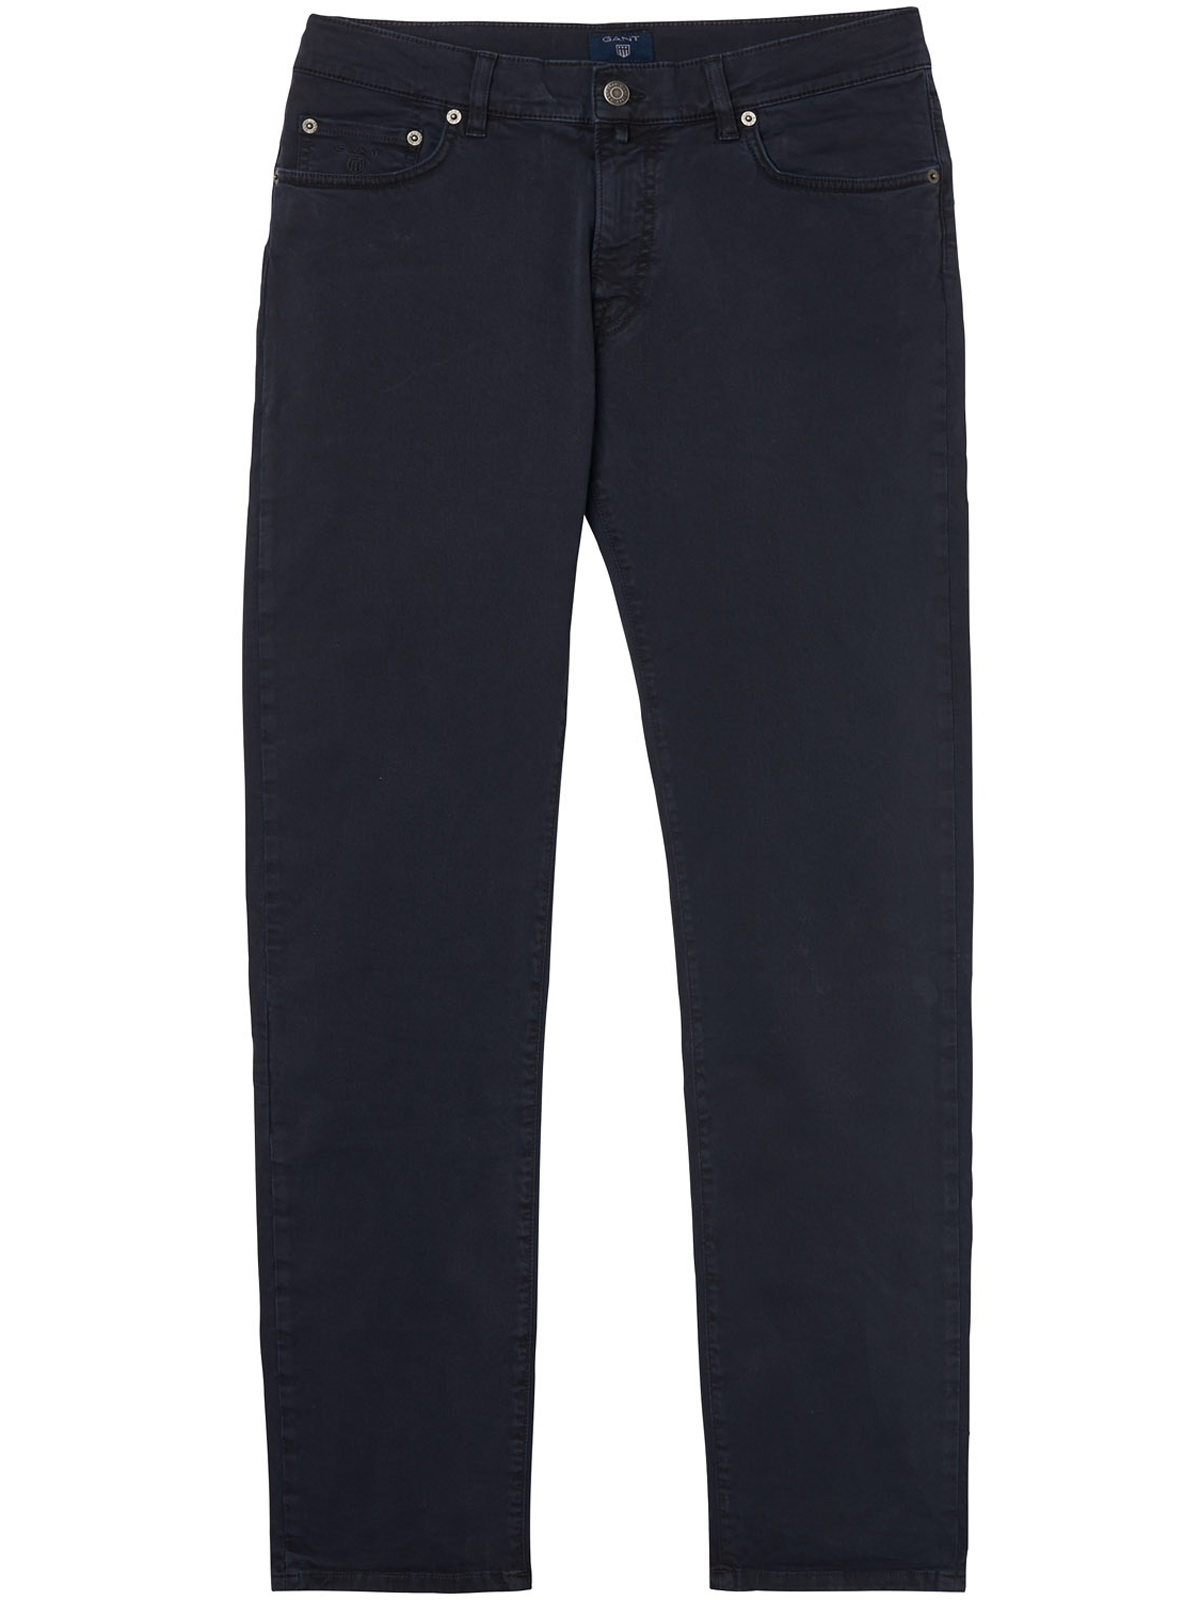 Picture of GANT | Men's Comfort Twill Jeans